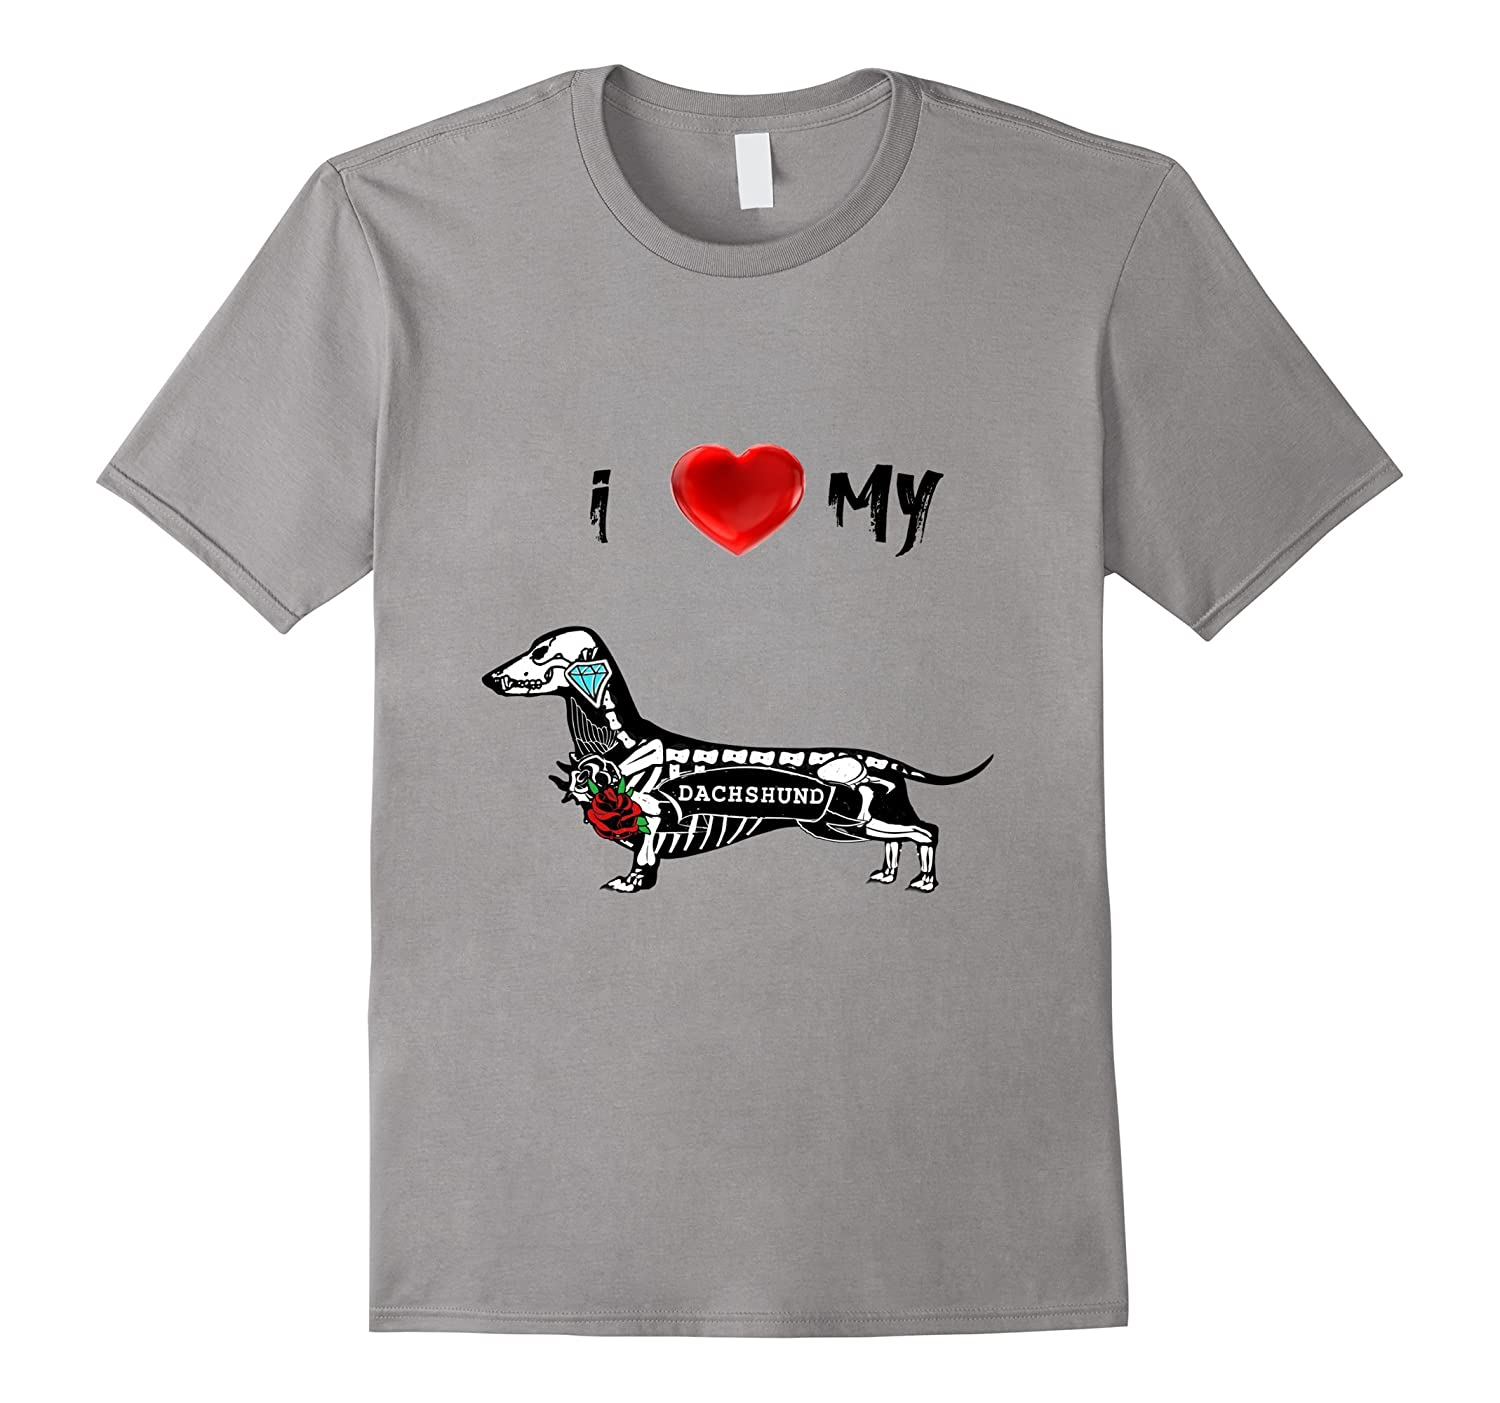 I LOVE MY DACHSHUND WIENER ROSES T SHIRT LOOSE FIT-CD